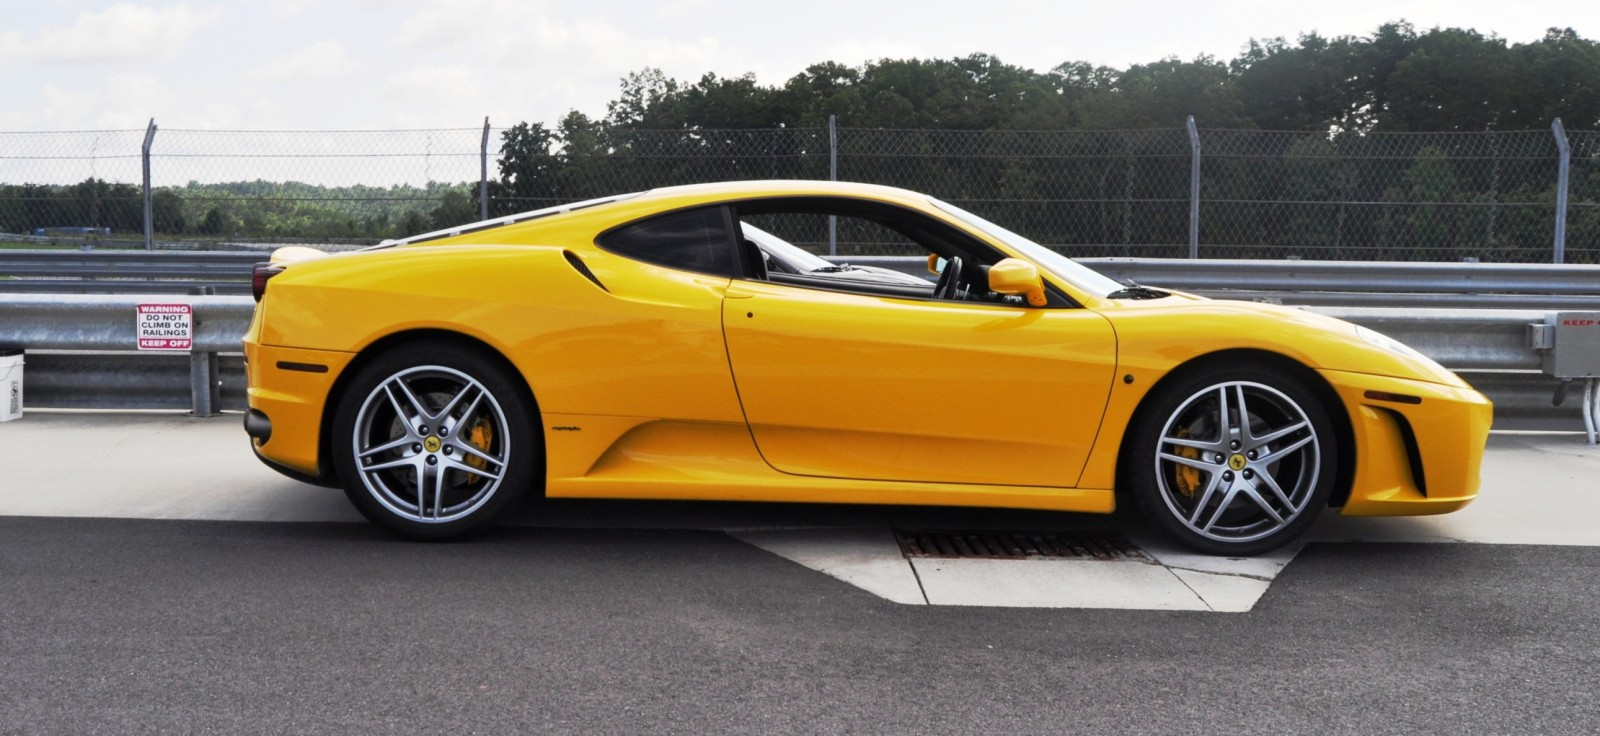 Beating the Supercar Paradox - 2007 Ferrari F430 at Velocity Motorsports Supercar Track Drive 3